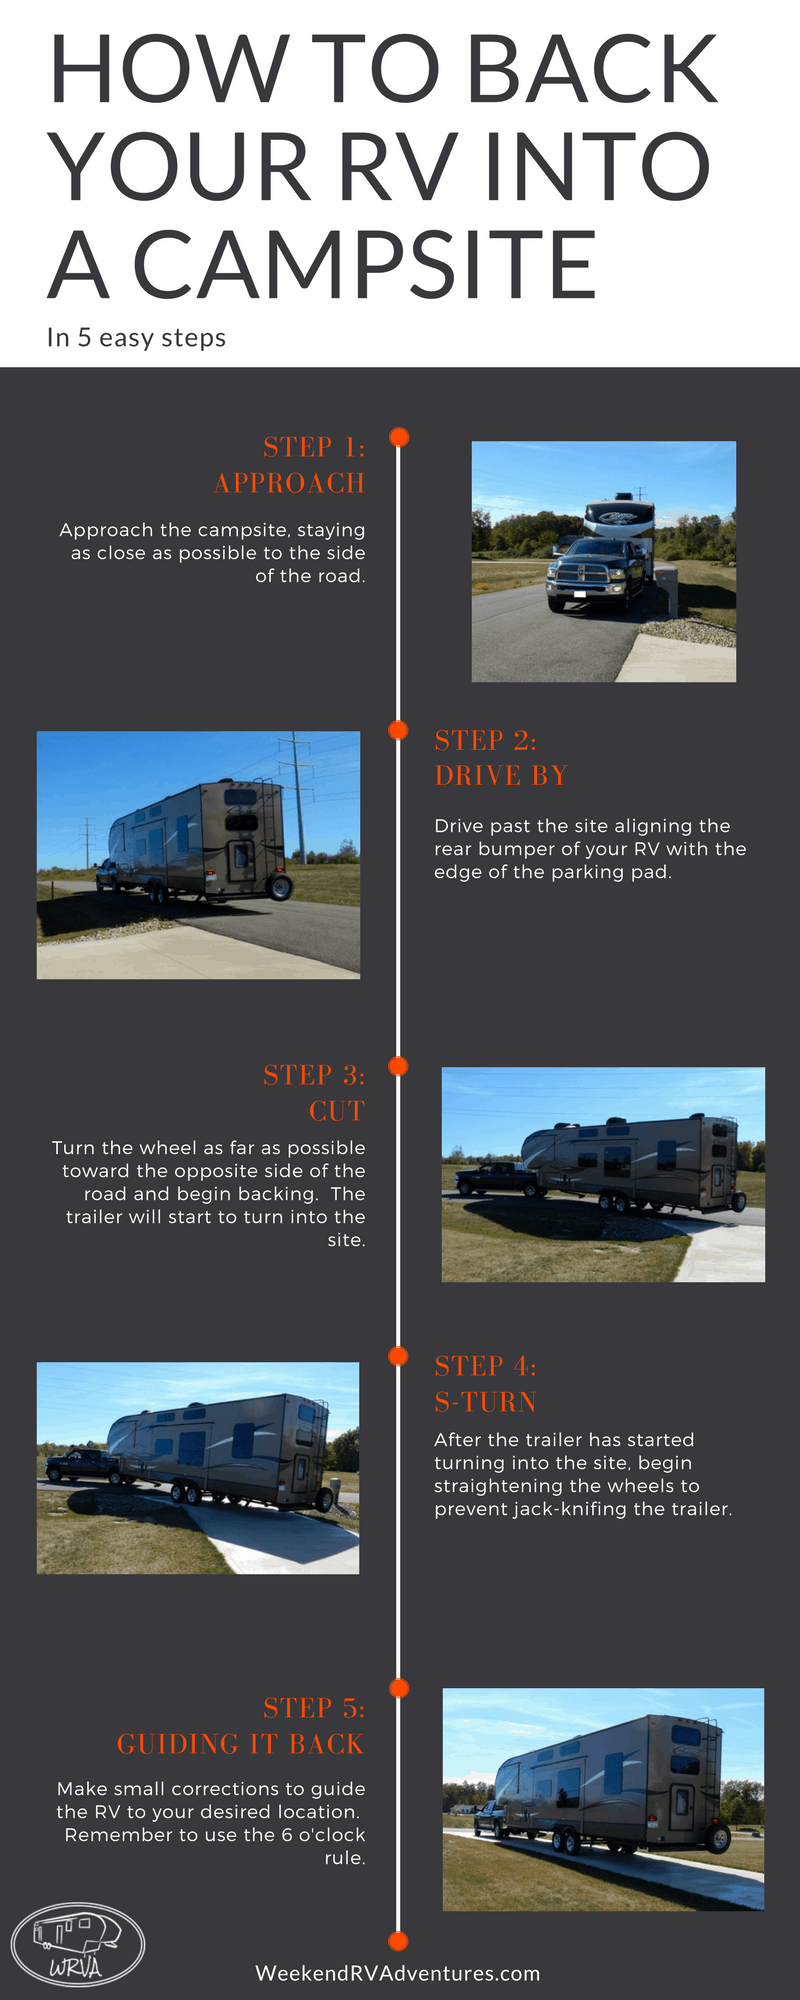 how to back and rv into a campsite